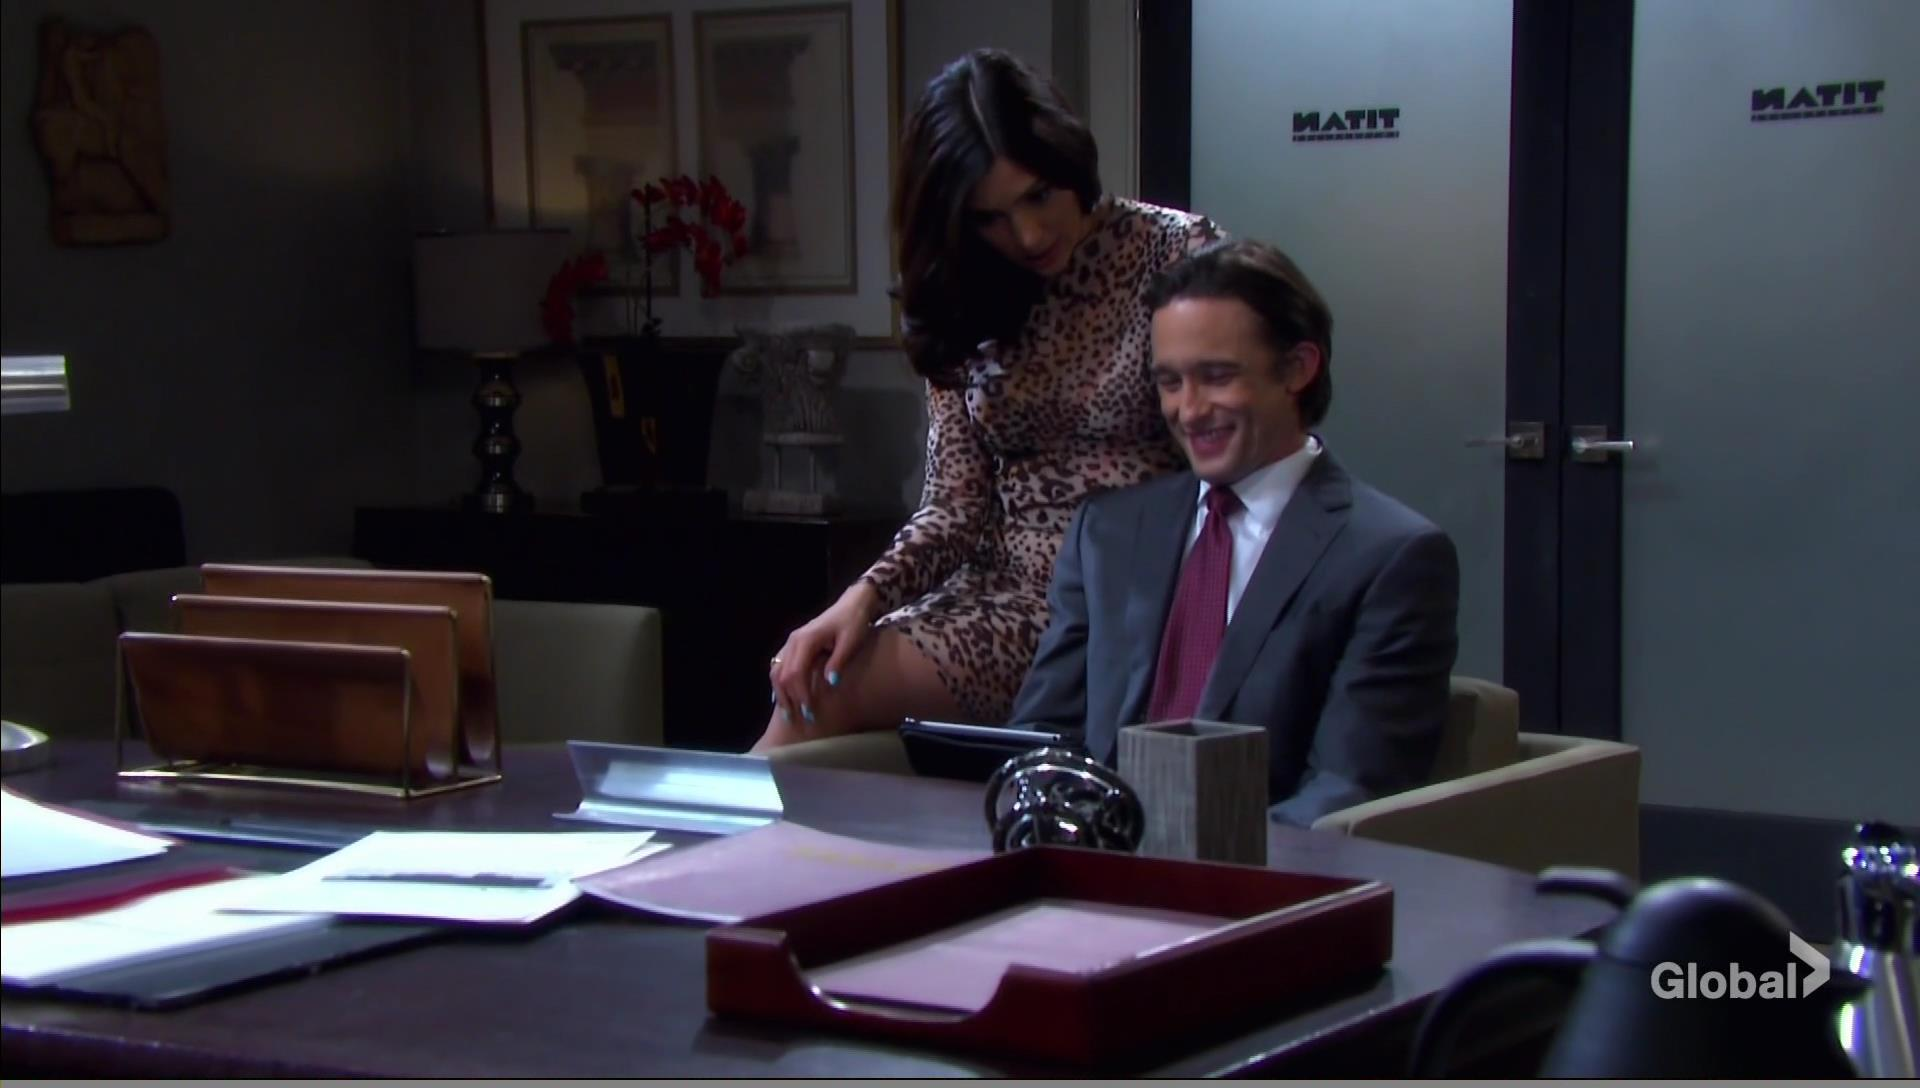 gabi and philip desk days of our lives